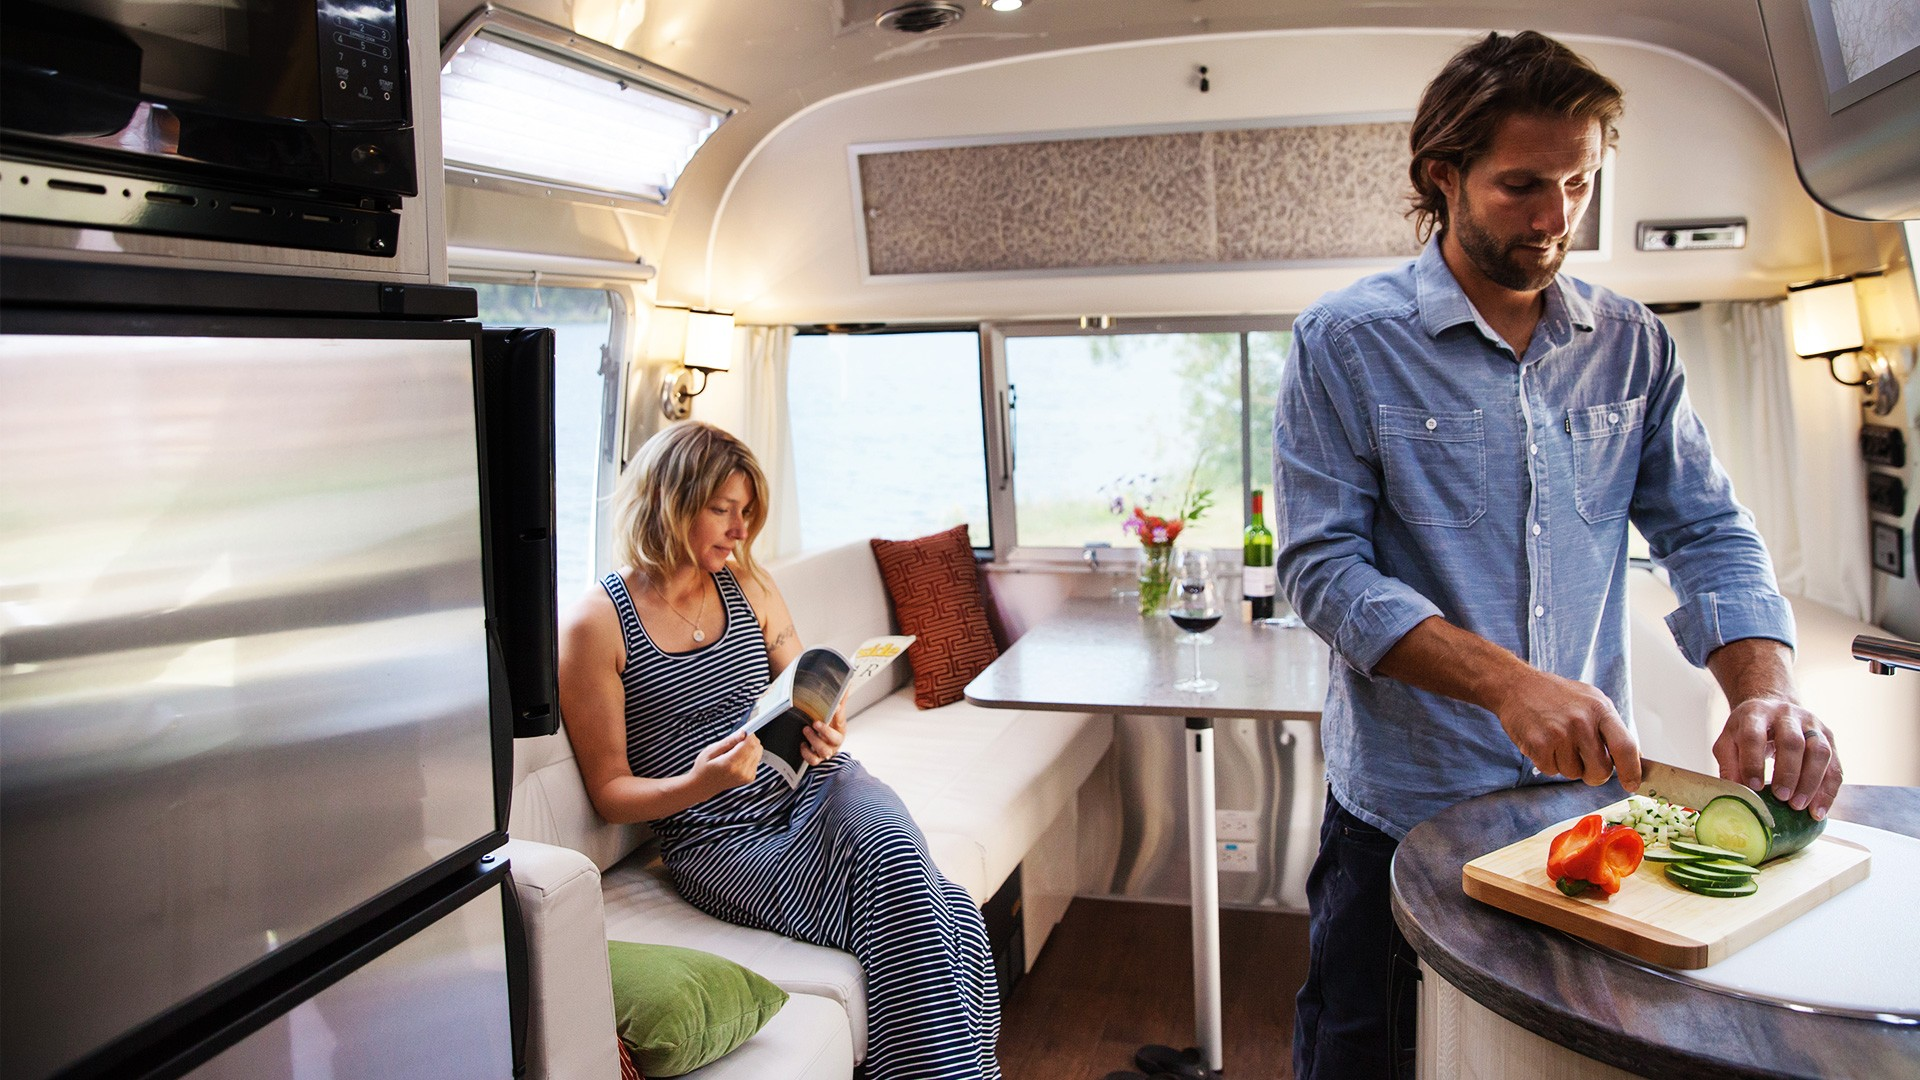 Table D Appoint Cuisine 2020 airstream international serenity